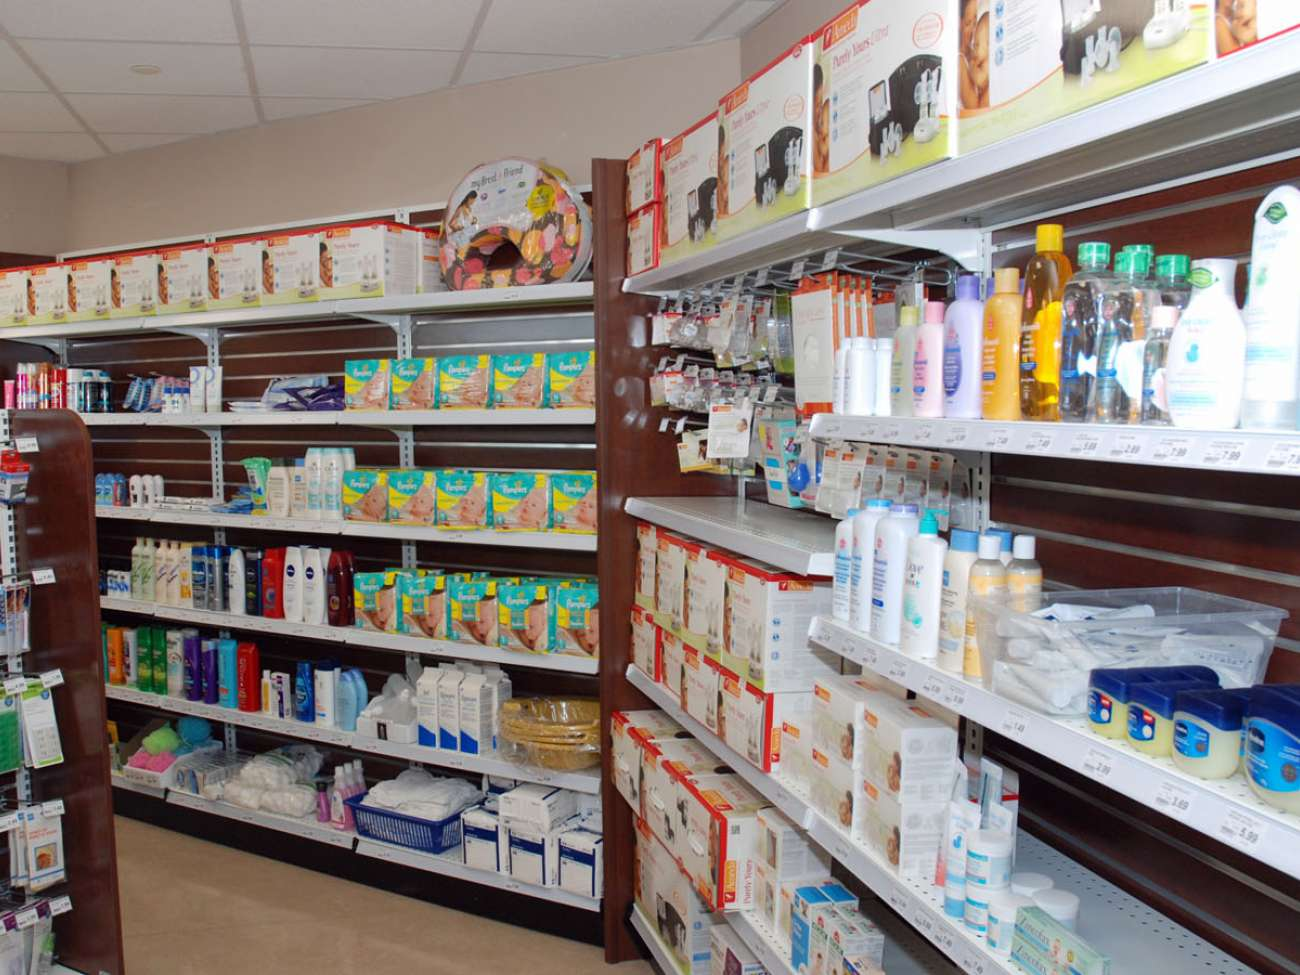 4,100 babies are born at GRH every year. So the renovated pharmacy includes a much larger baby care section.